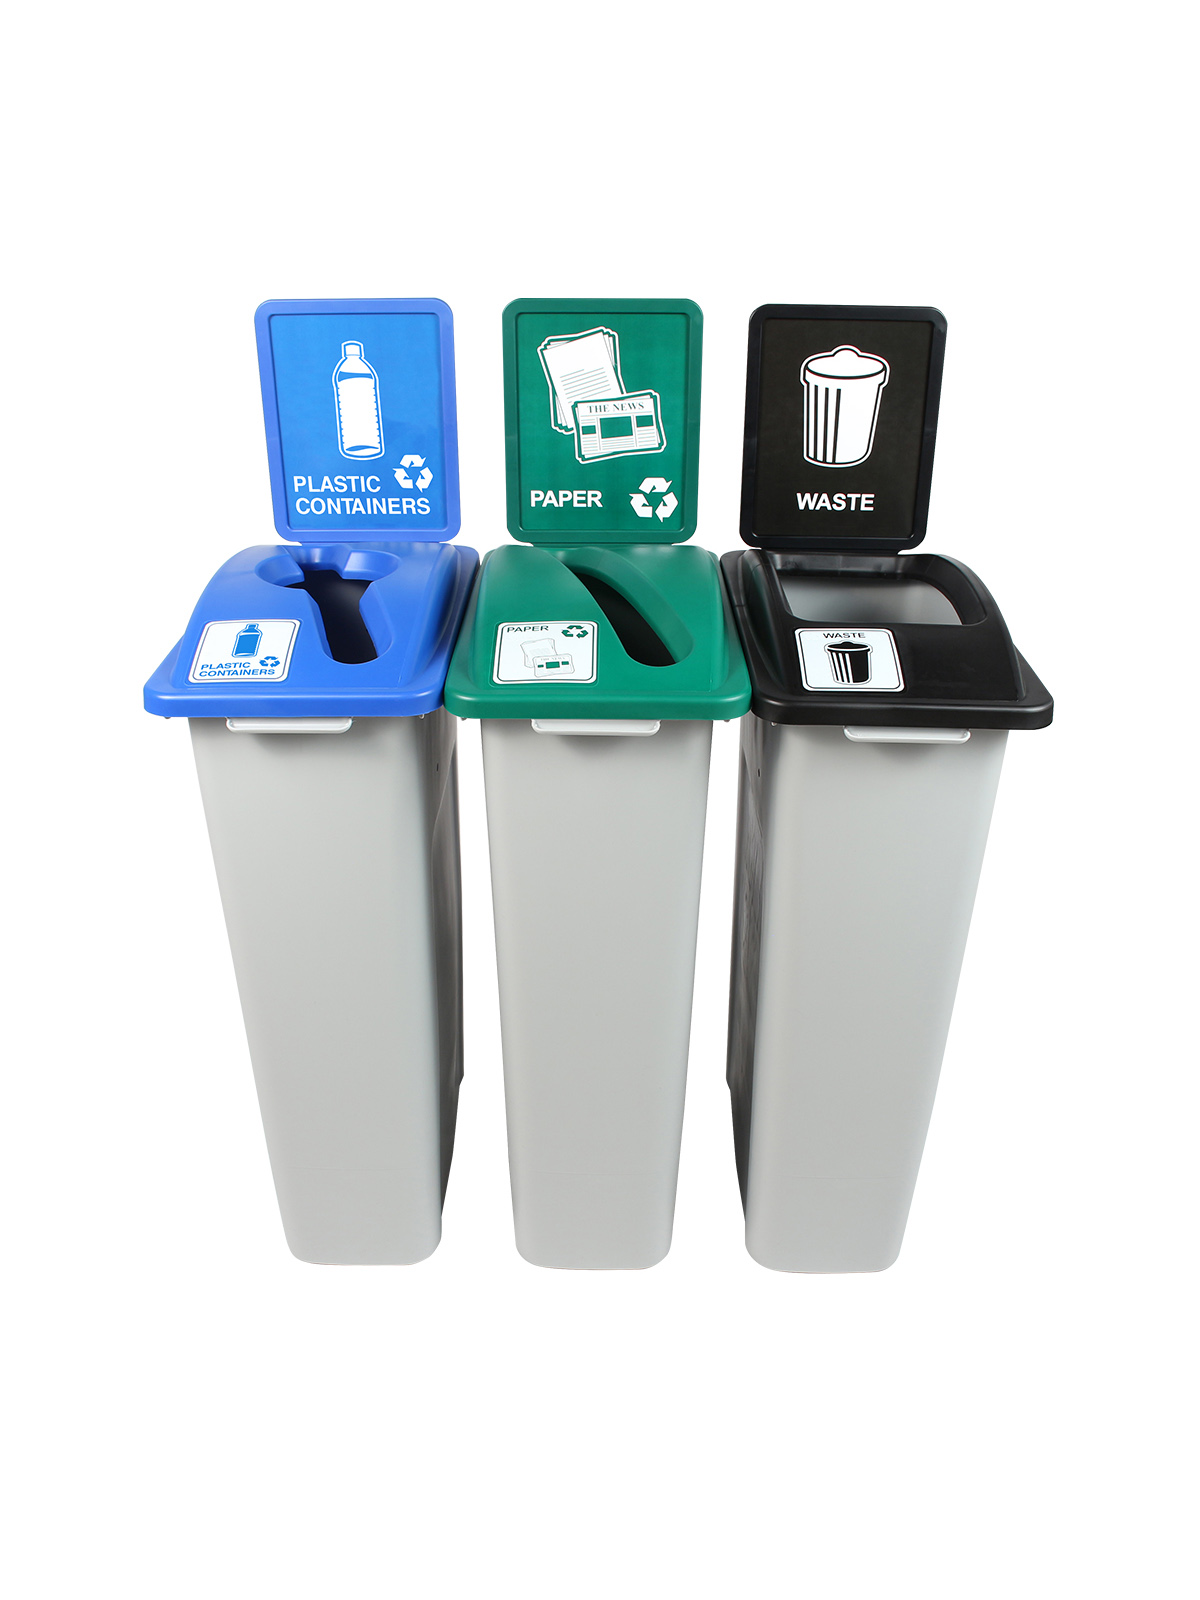 WASTE WATCHER - Triple - Oregon Compliant - Plastic Containers-Paper-Waste - Mixed-Slot-Full - Grey-Blue-Green-Black title=